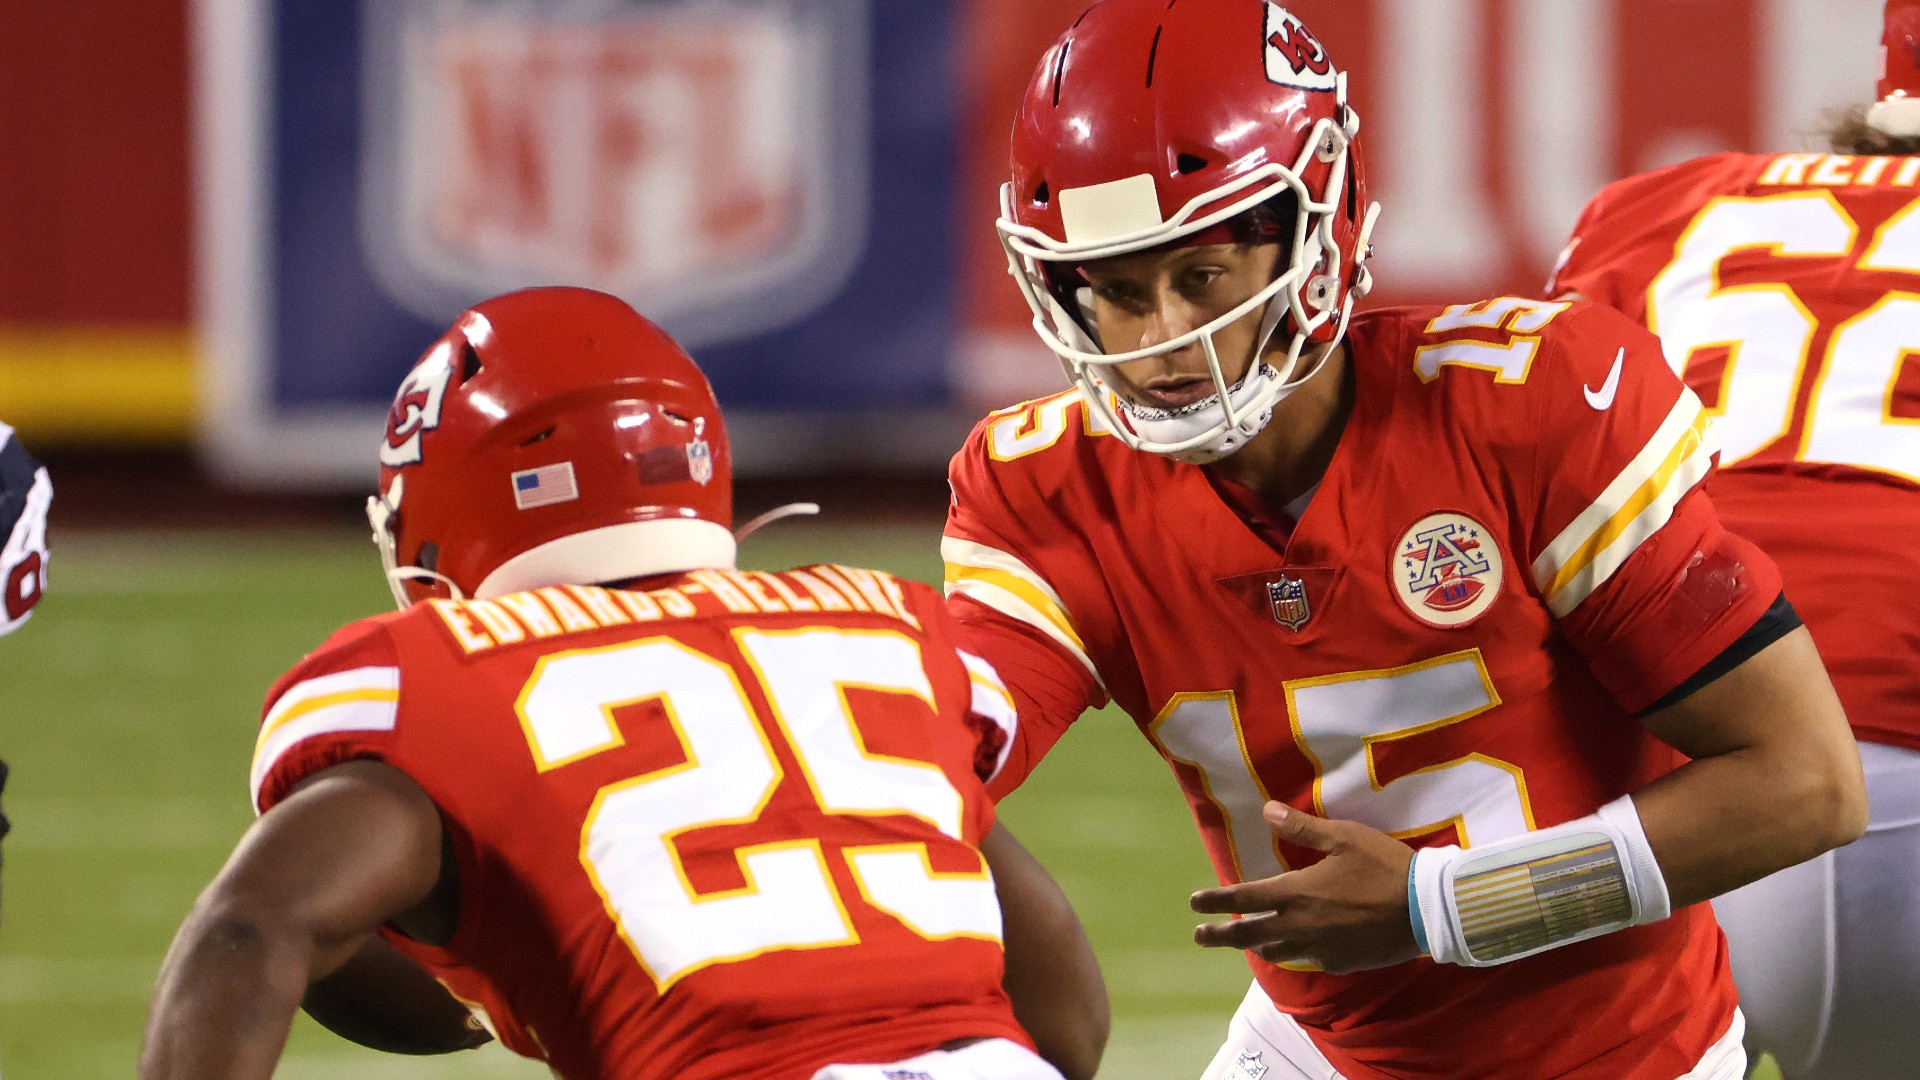 https://images.daznservices.com/di/library/sporting_news/a7/a0/patrick-mahomes-clyde-edwards-helaire-091020-getty-ftr_1pfrhvdnqaq851m4gfqw3bgn4a.jpg?t=2064427524&w=%7Bwidth%7D&quality=80